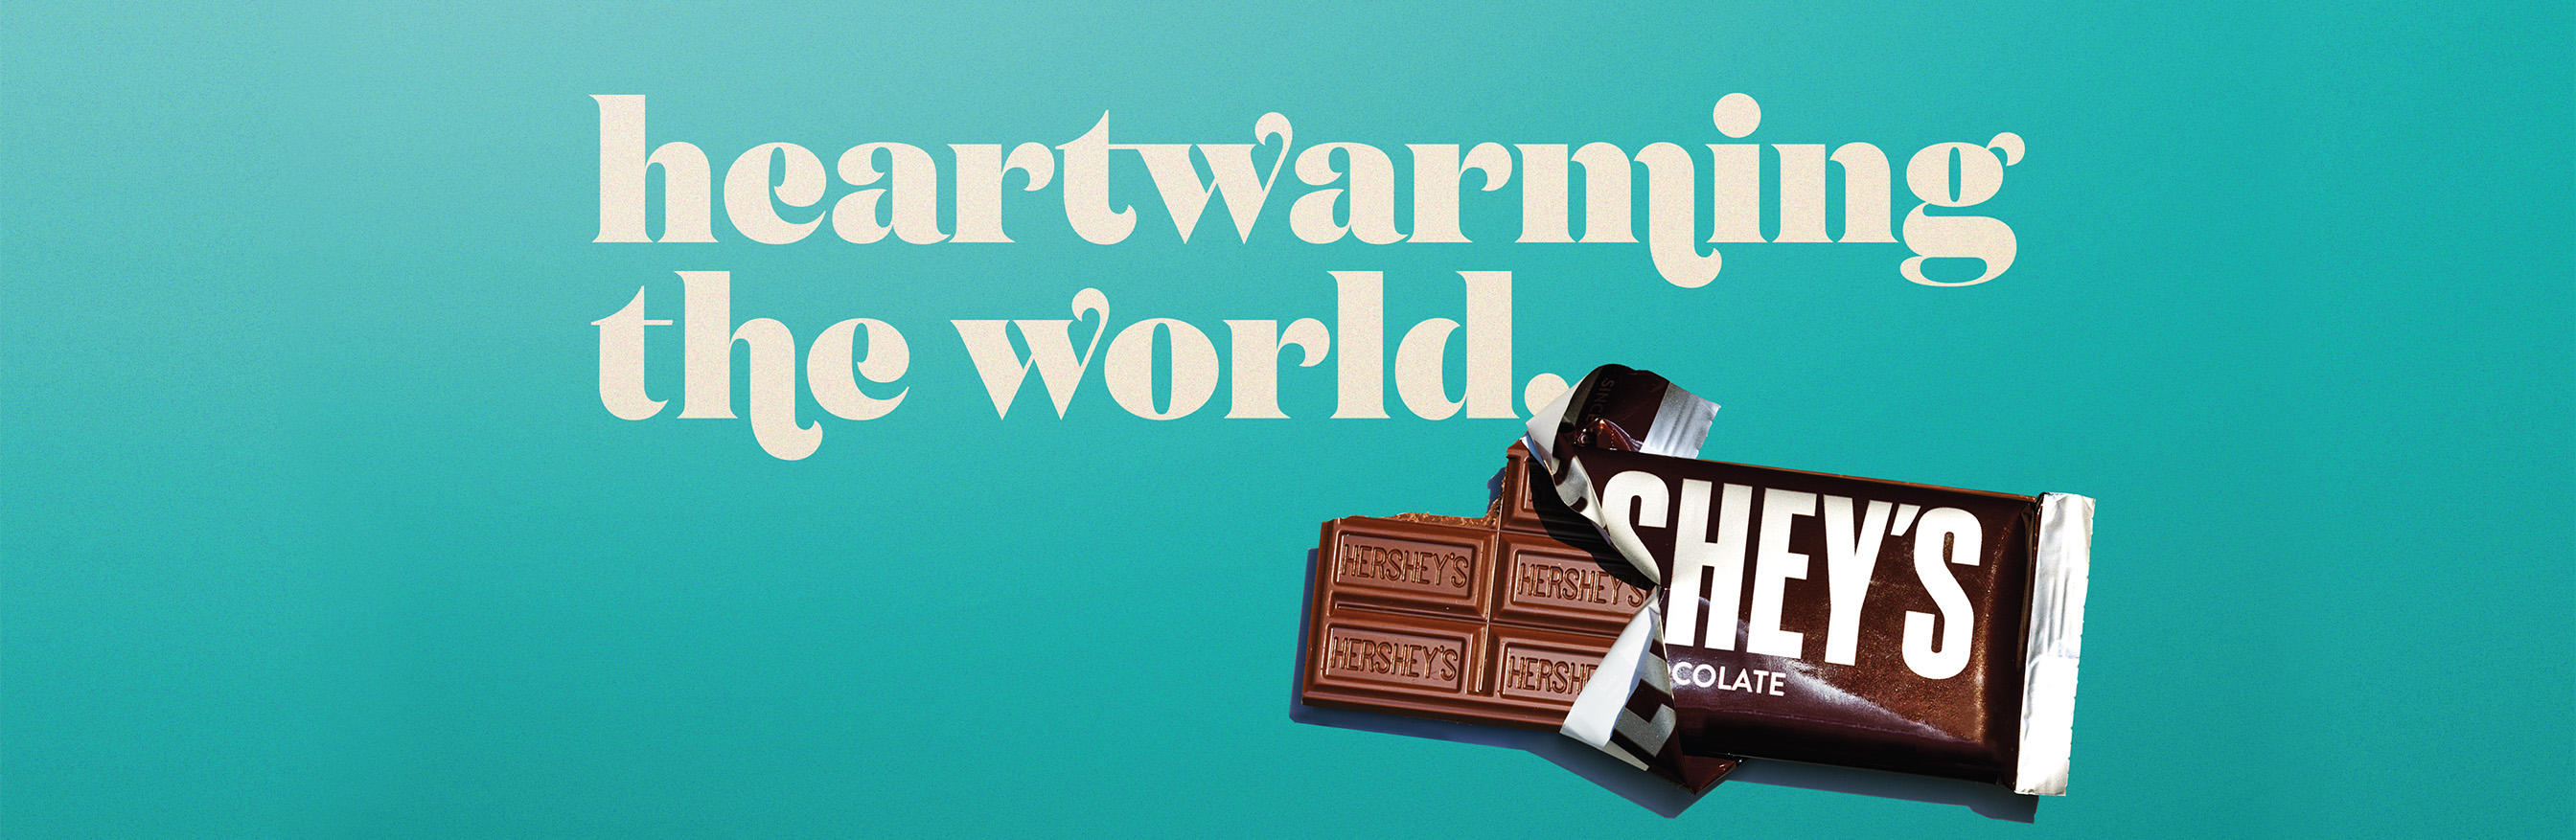 Open Hershey's bar with tagline: heartwearming the world